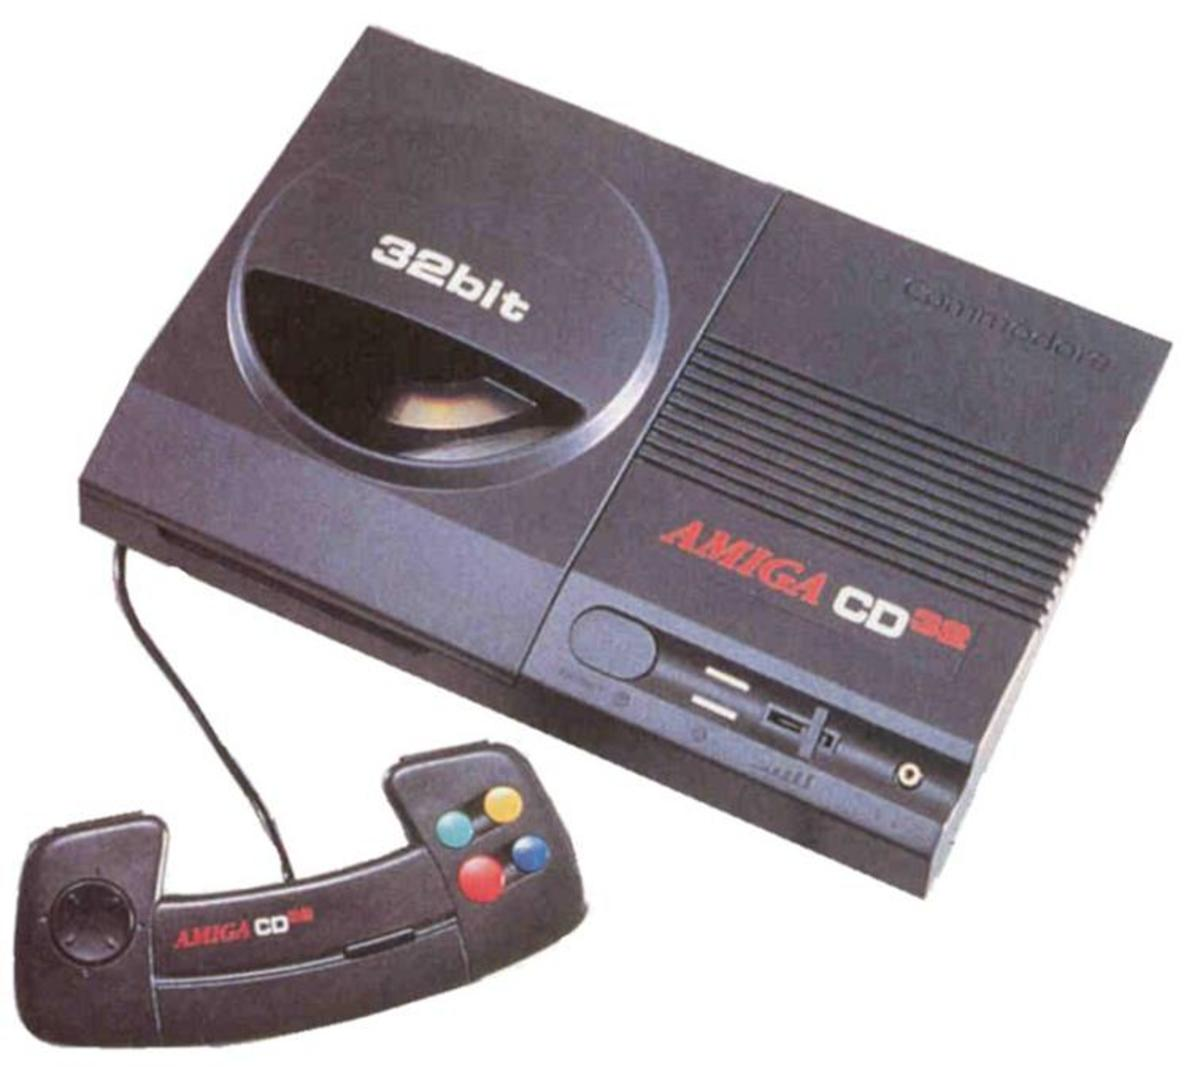 The classic Amiga CD32 console with controller